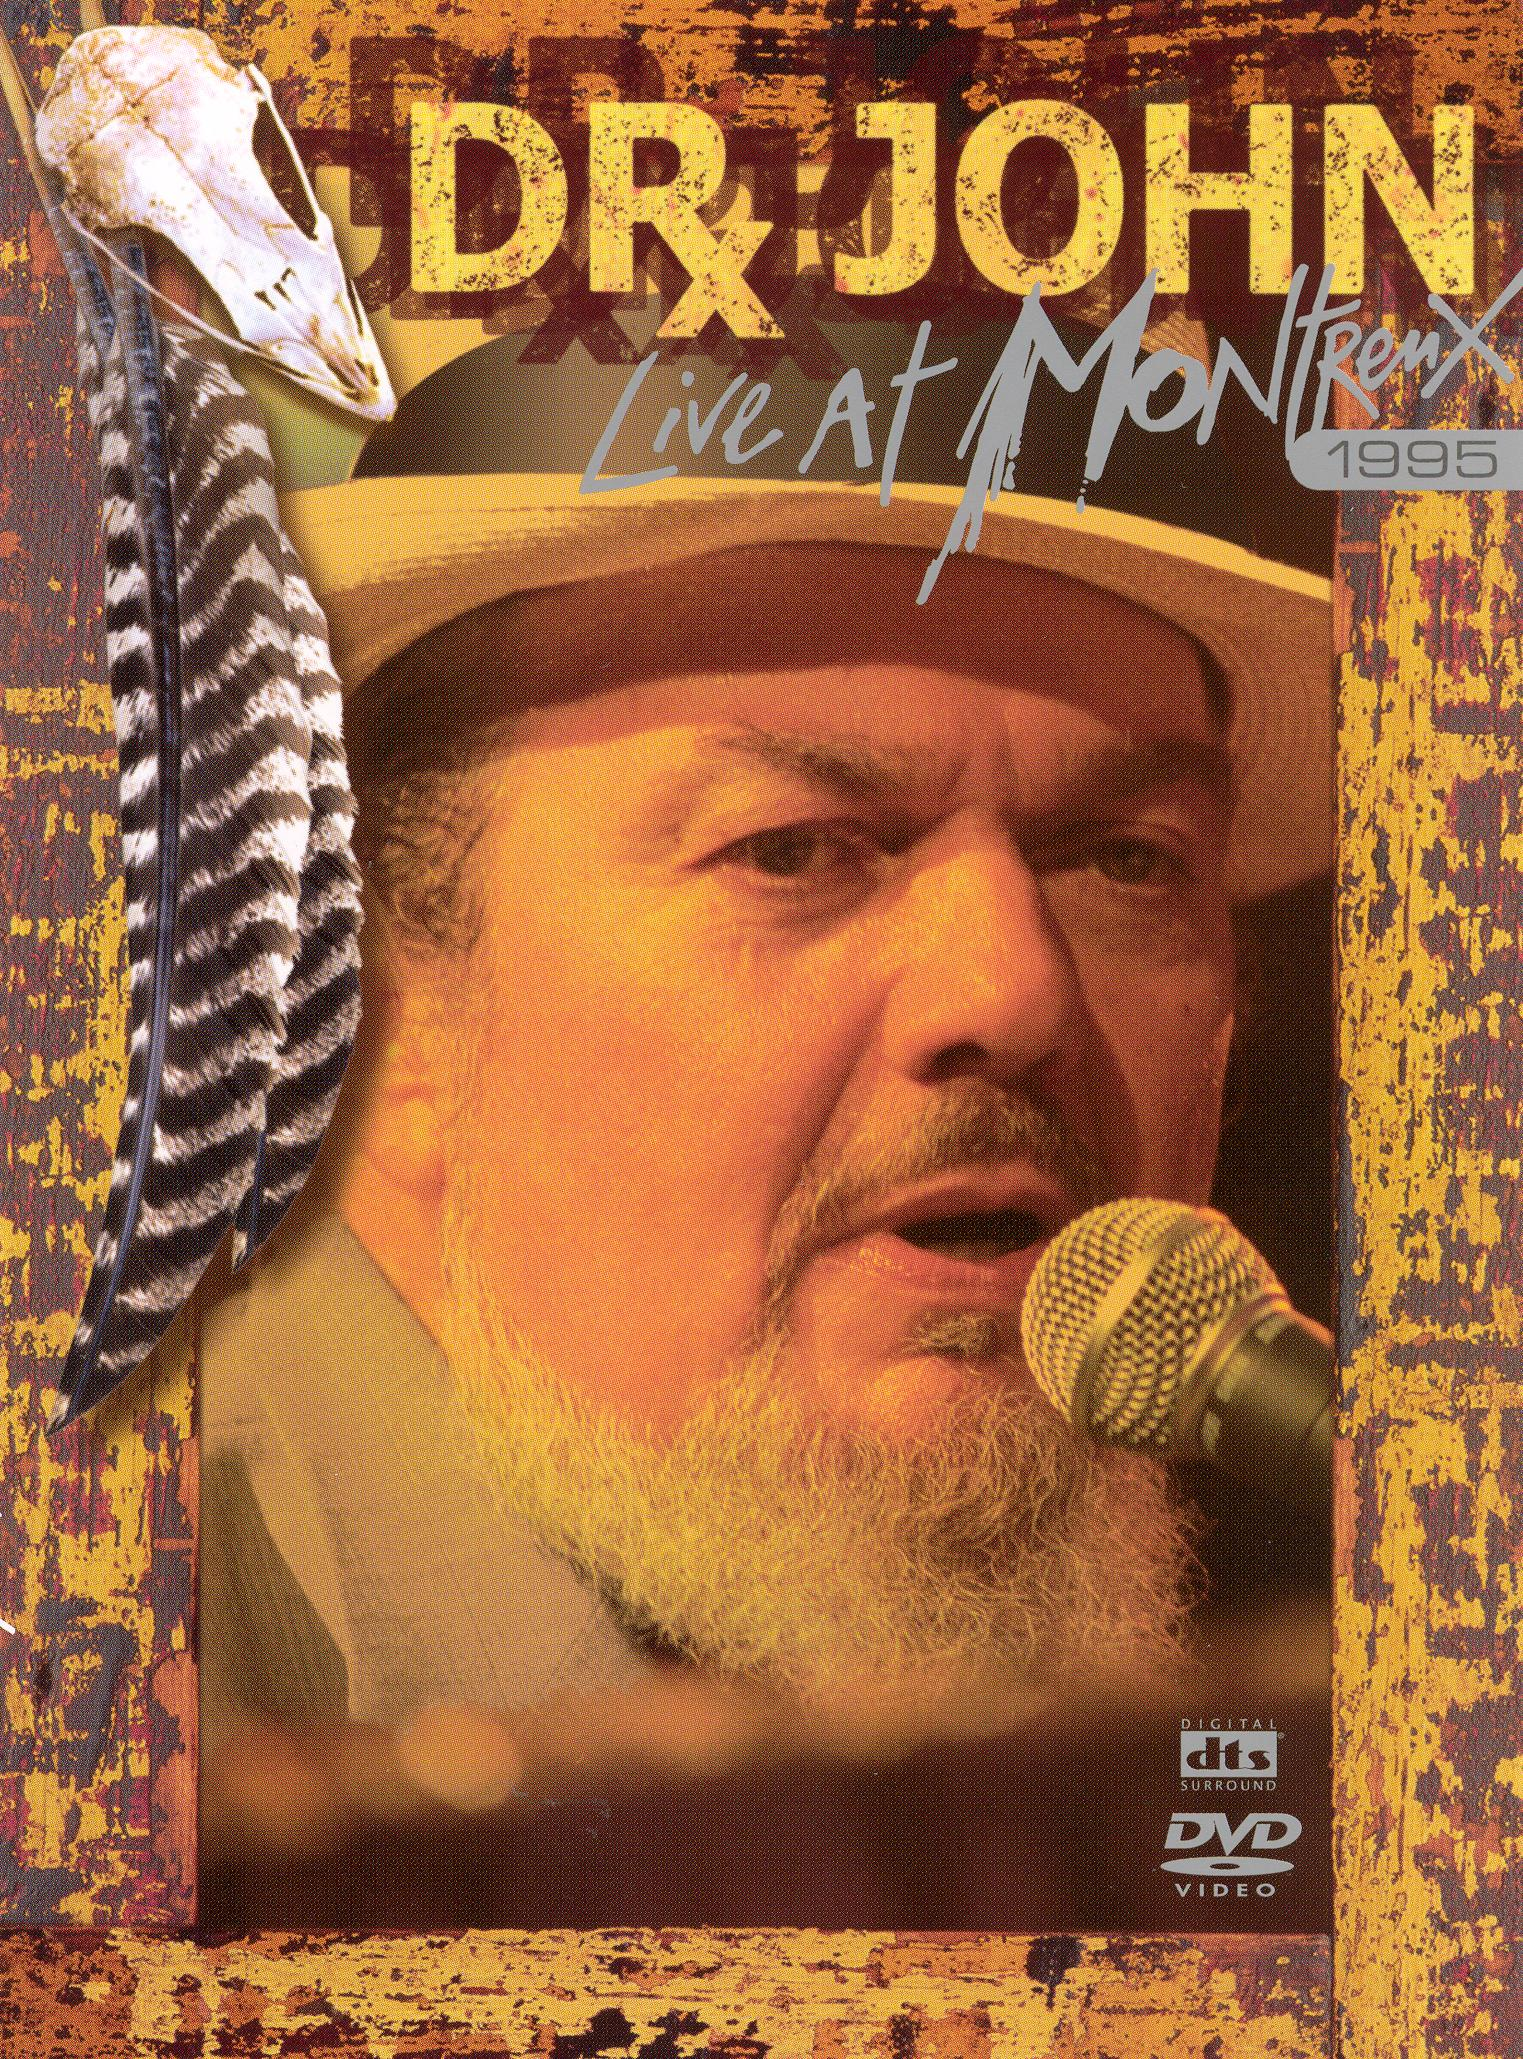 Dr. John: Live at Montreux, 1995